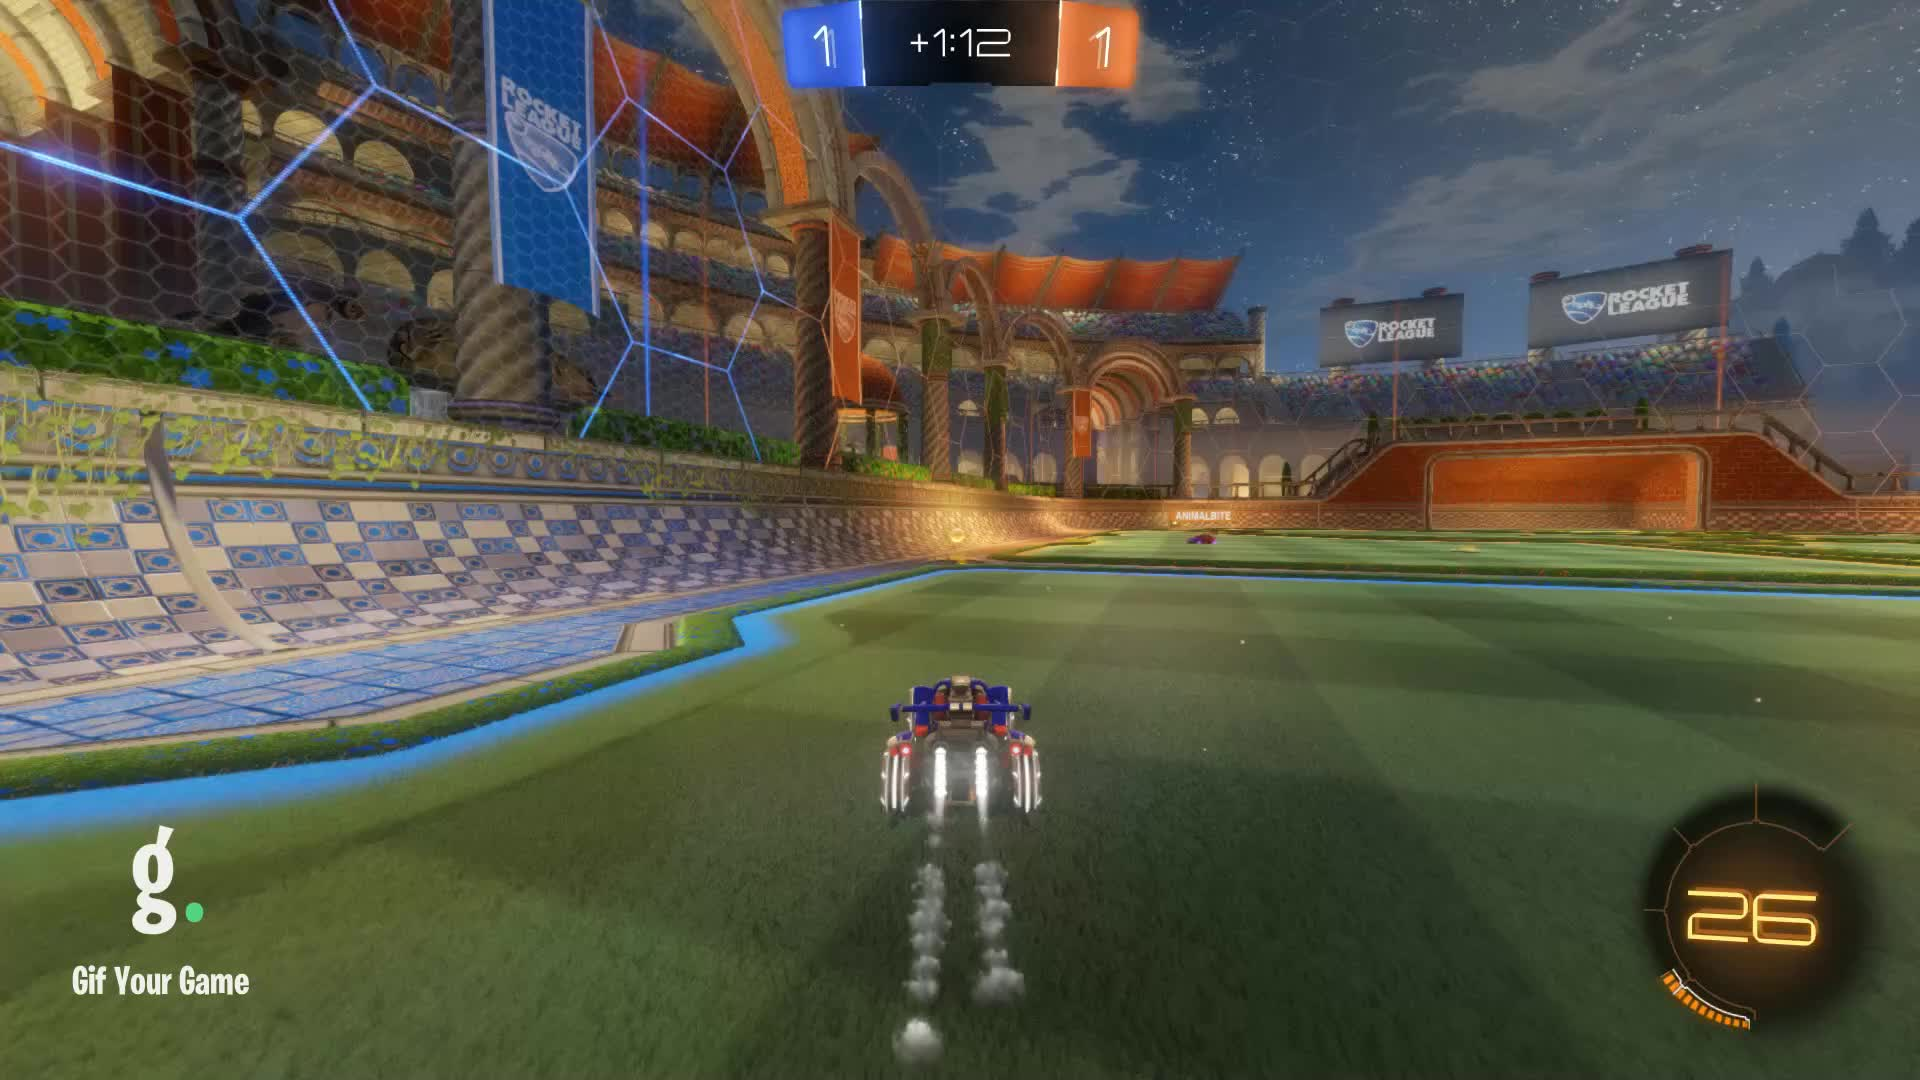 Demo, Gif Your Game, GifYourGame, Kniggit_, Rocket League, RocketLeague, Demo 3: Kniggit_ GIFs